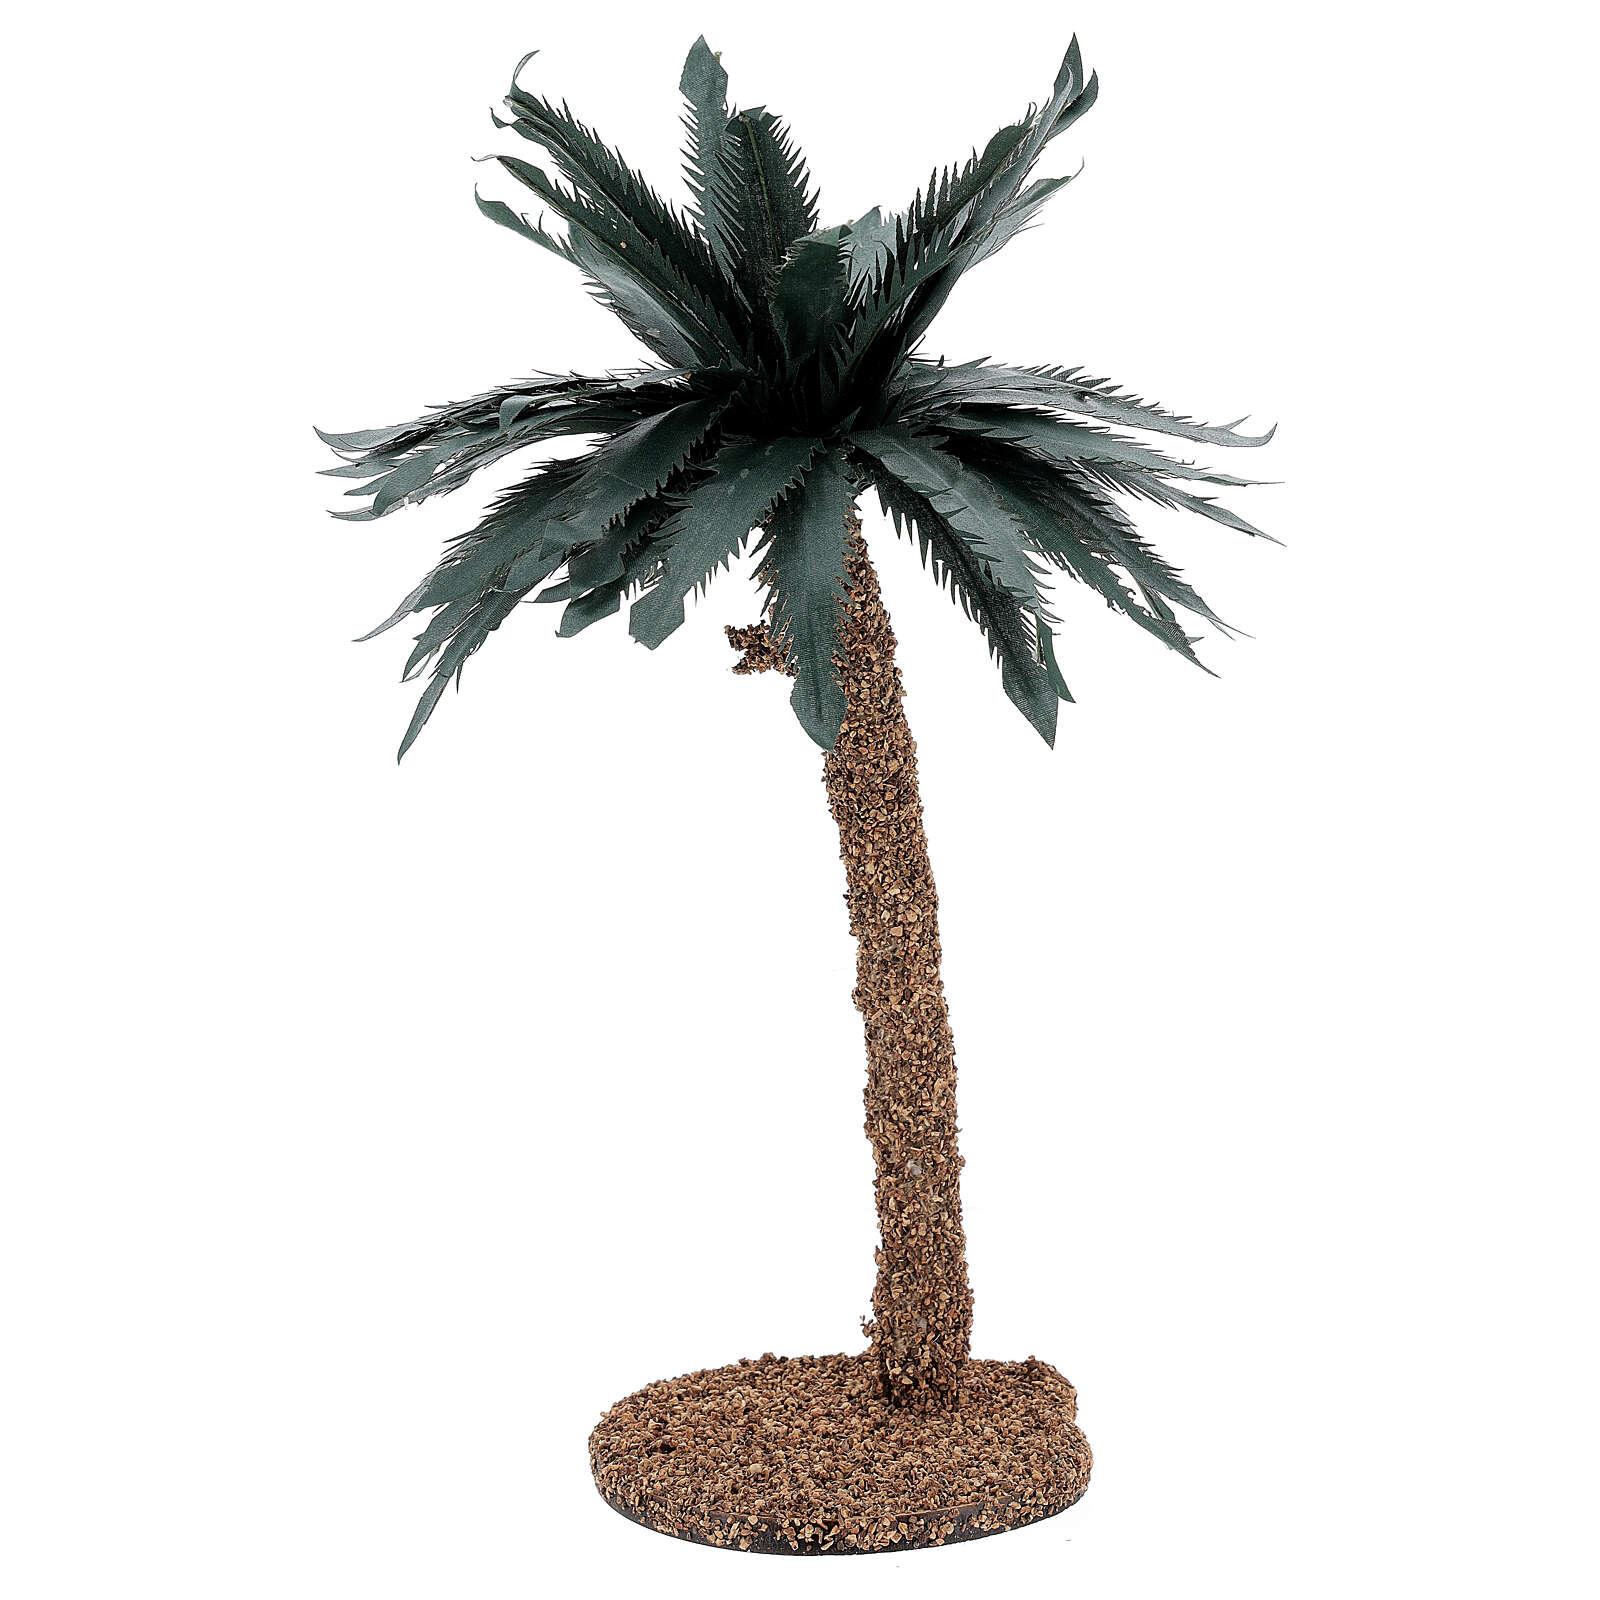 Palm tree 30 cm for Nativity Scene with 10-14 cm figurines 4